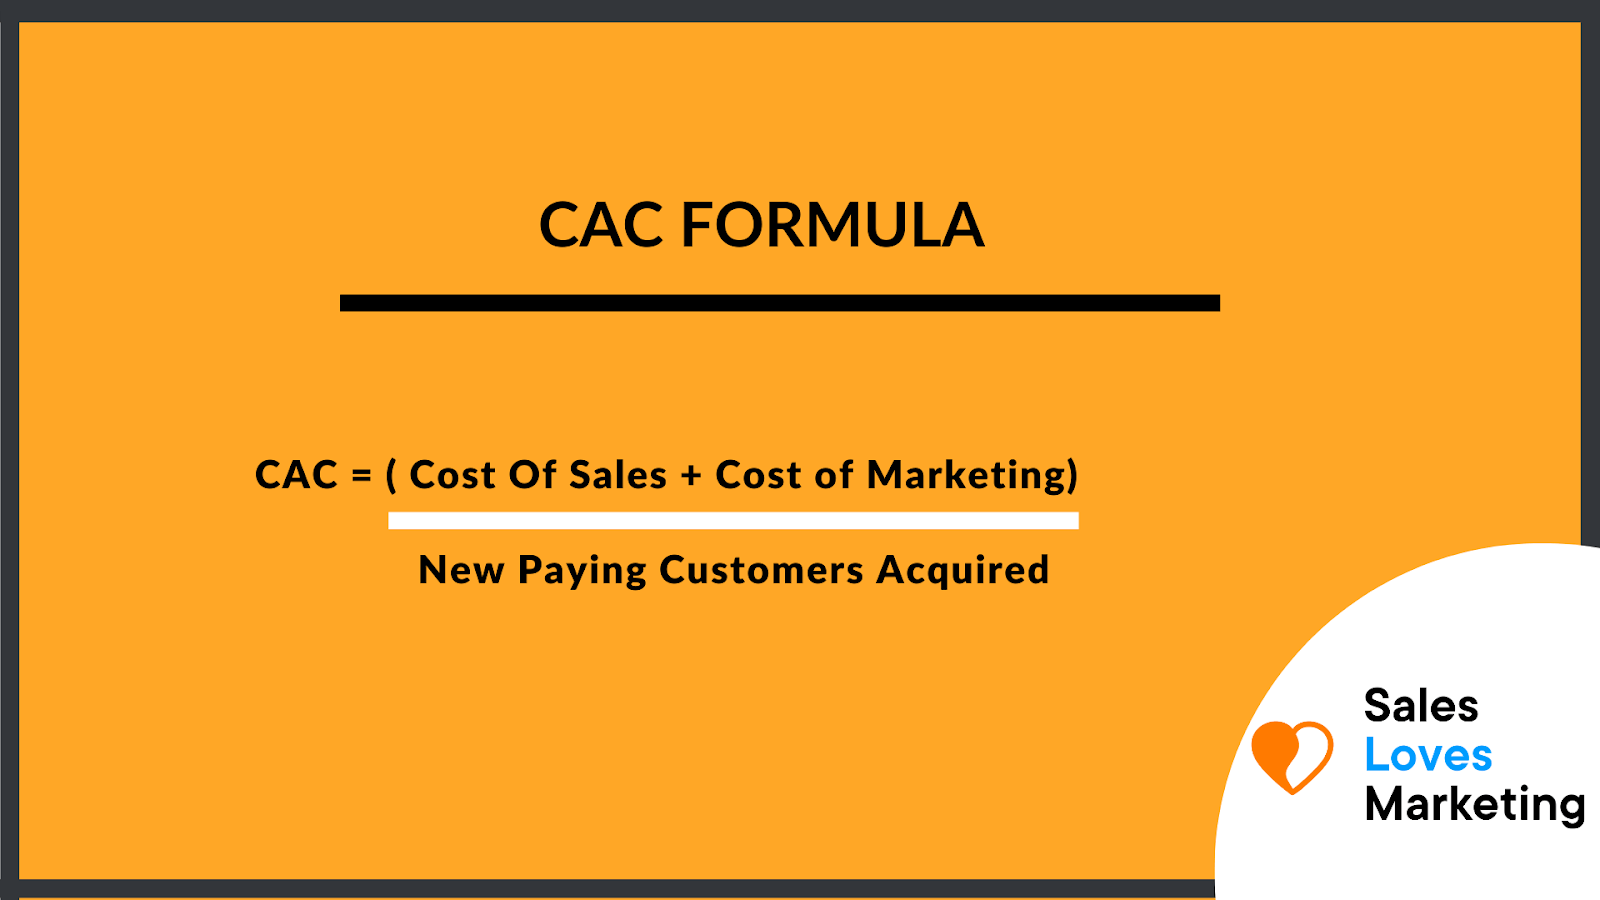 How to calculate CaC, the formula to do so.